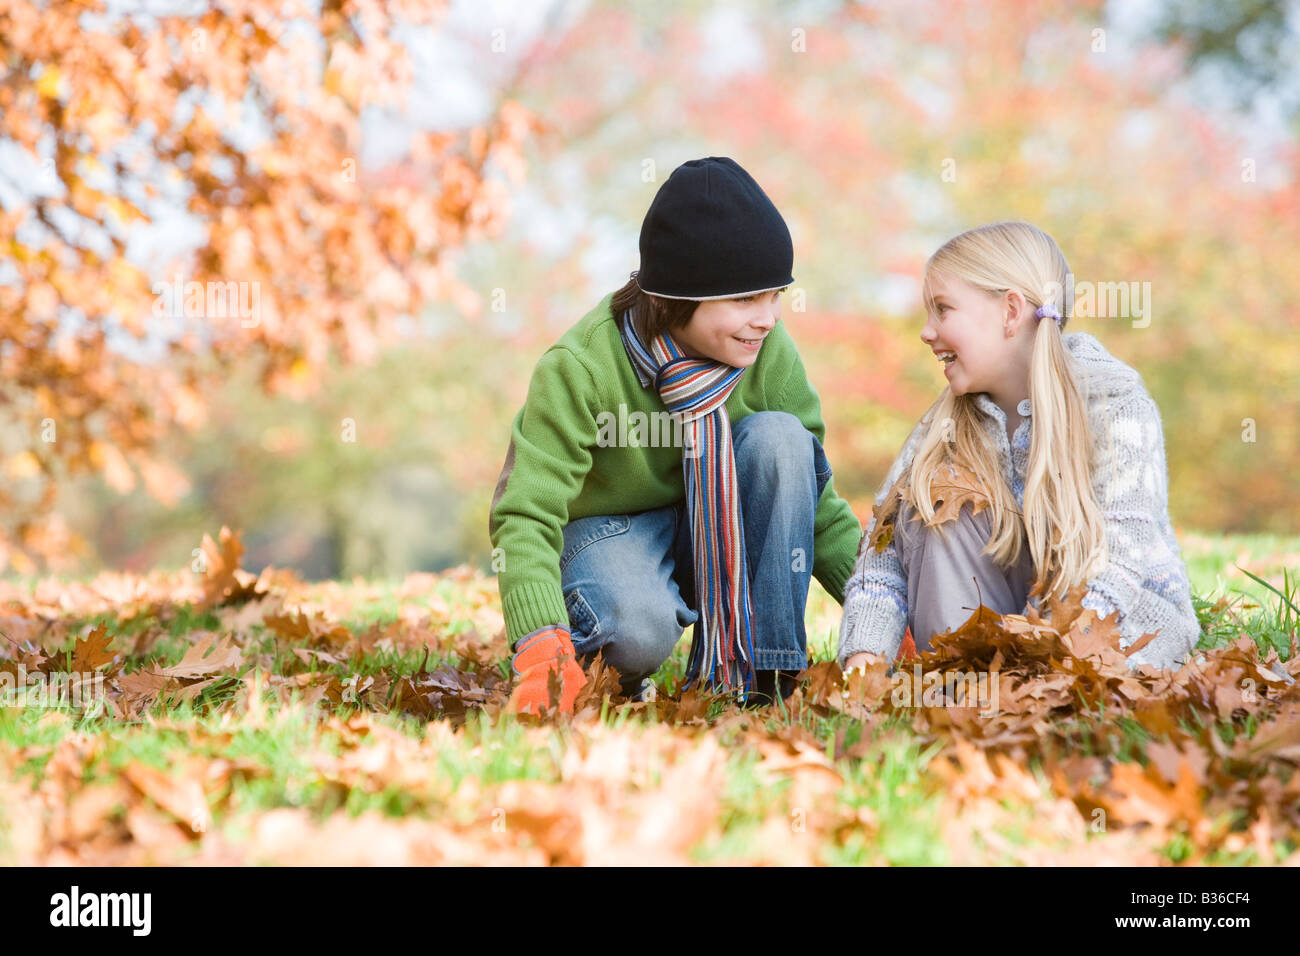 Two young children outdoors in park playing in leaves and smiling (selective focus) Stock Photo